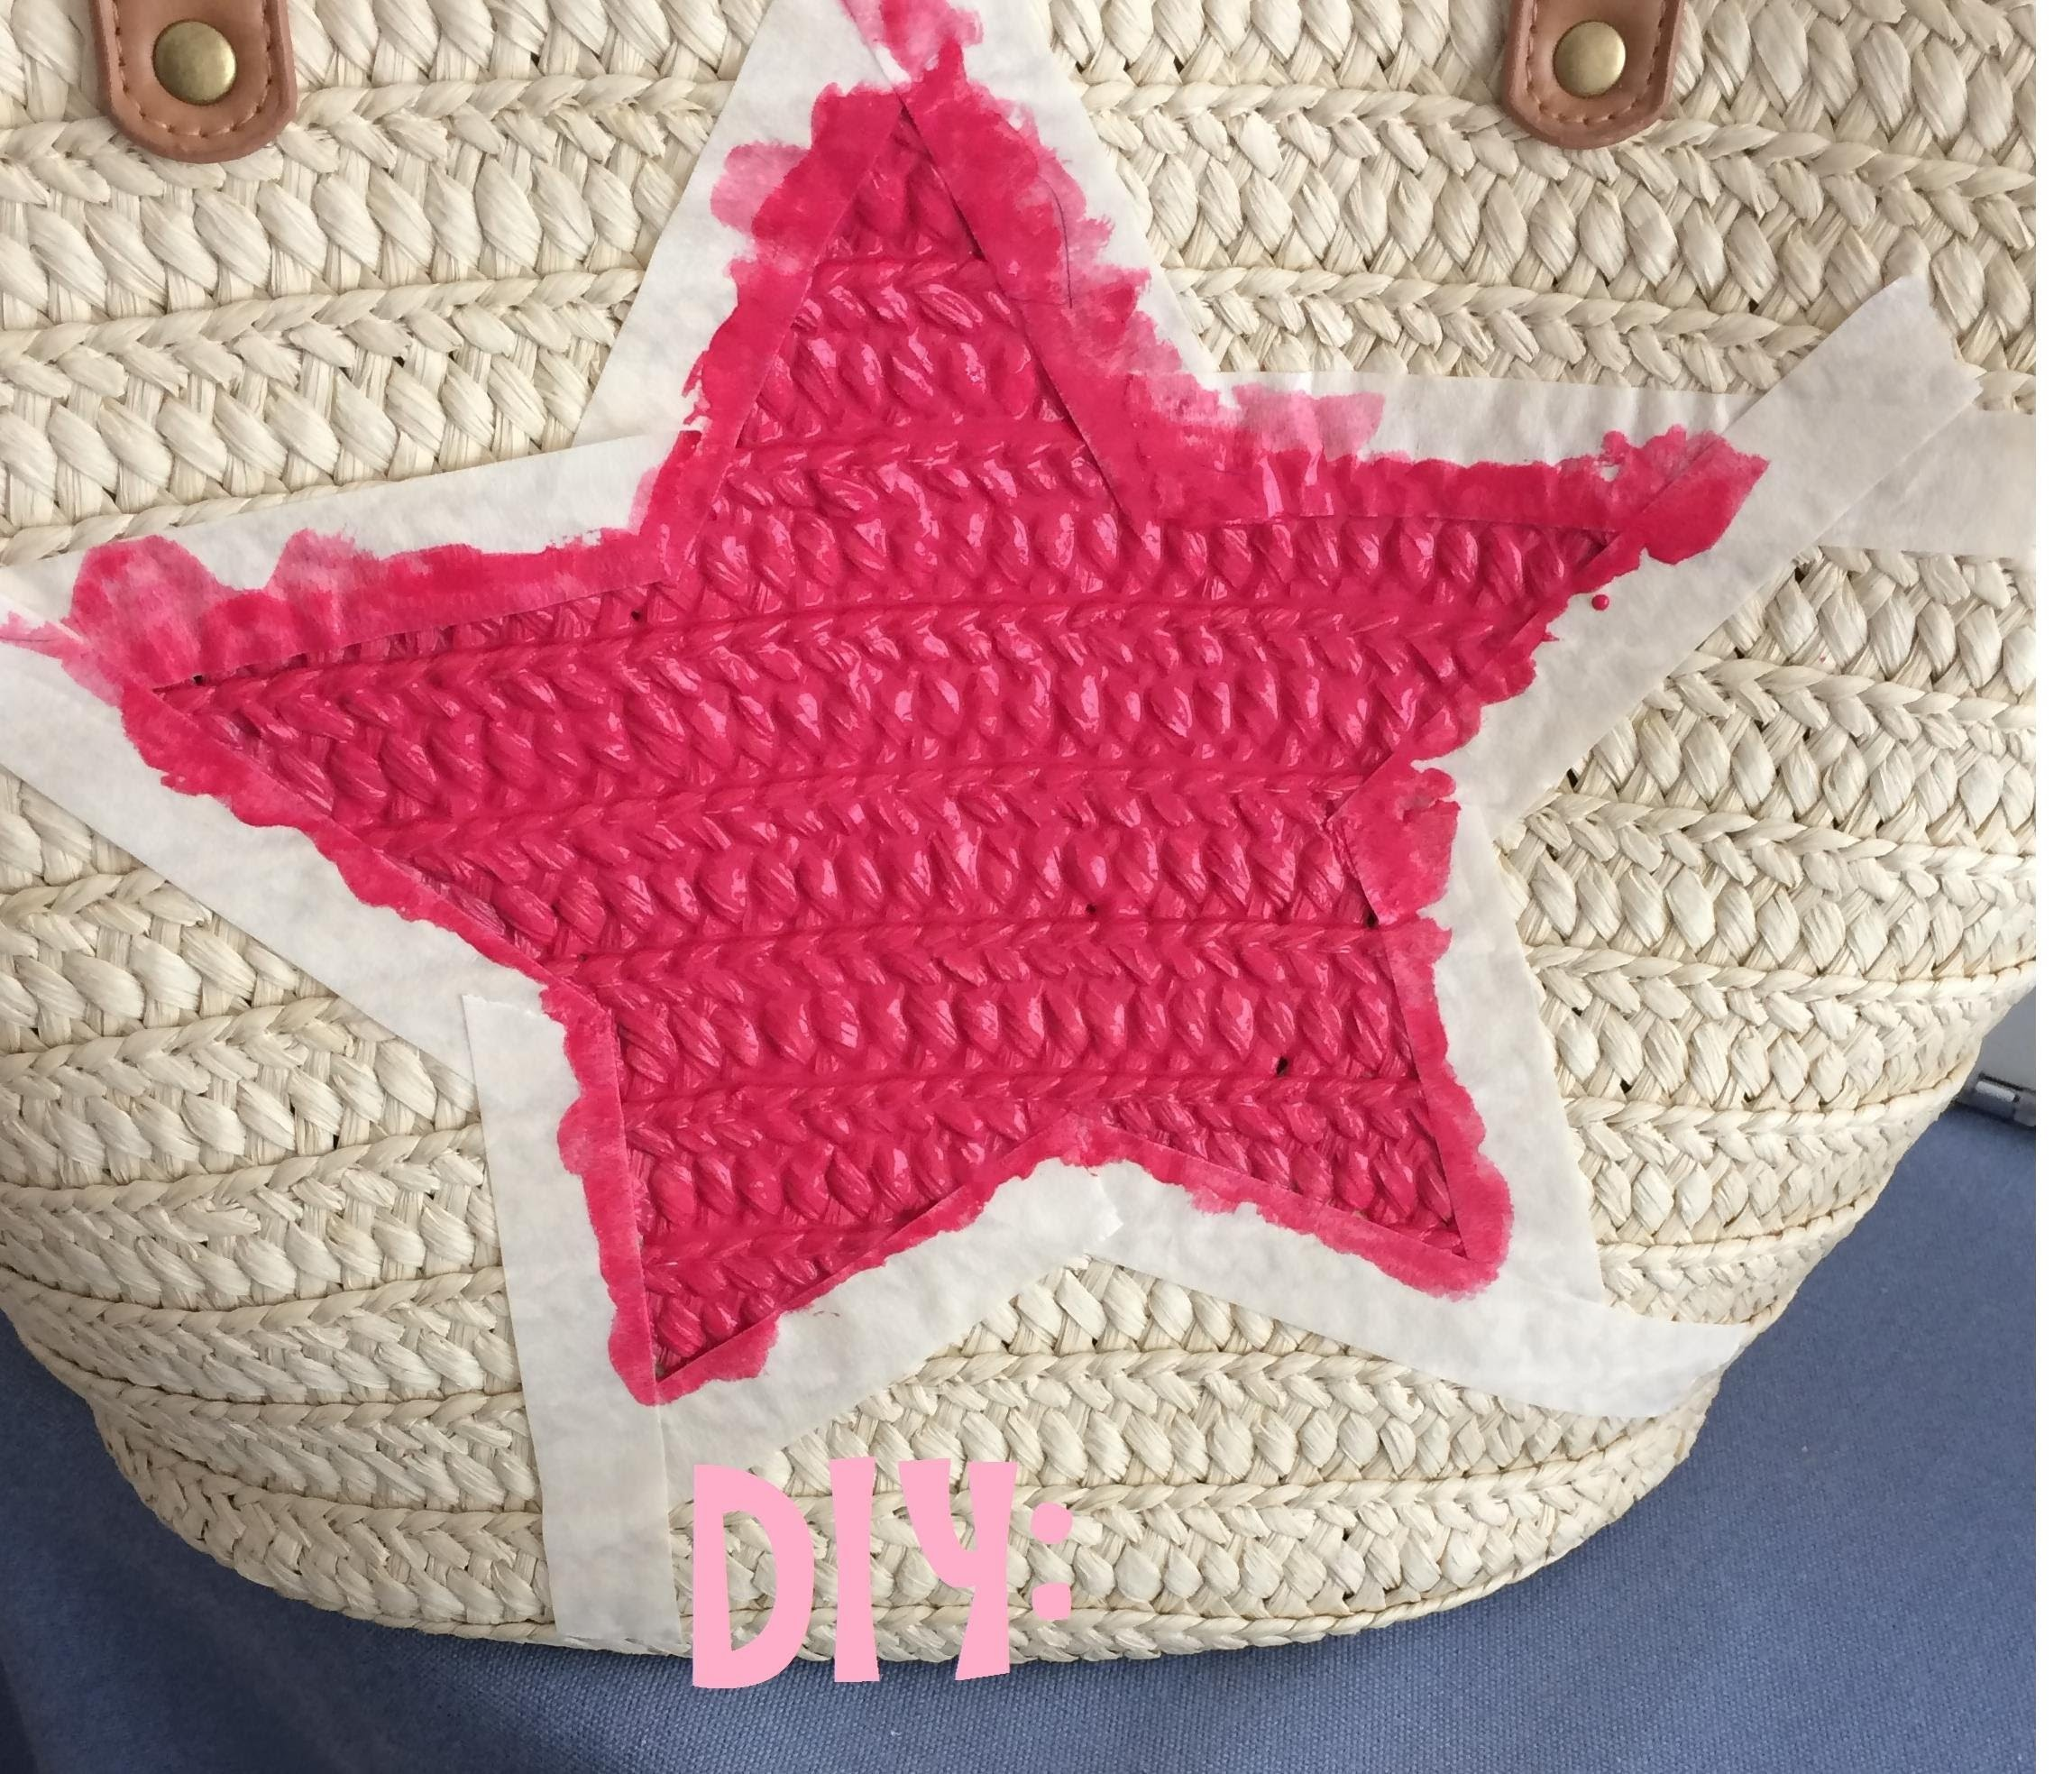 DIY Customiza tu capazo. Wicker Bag